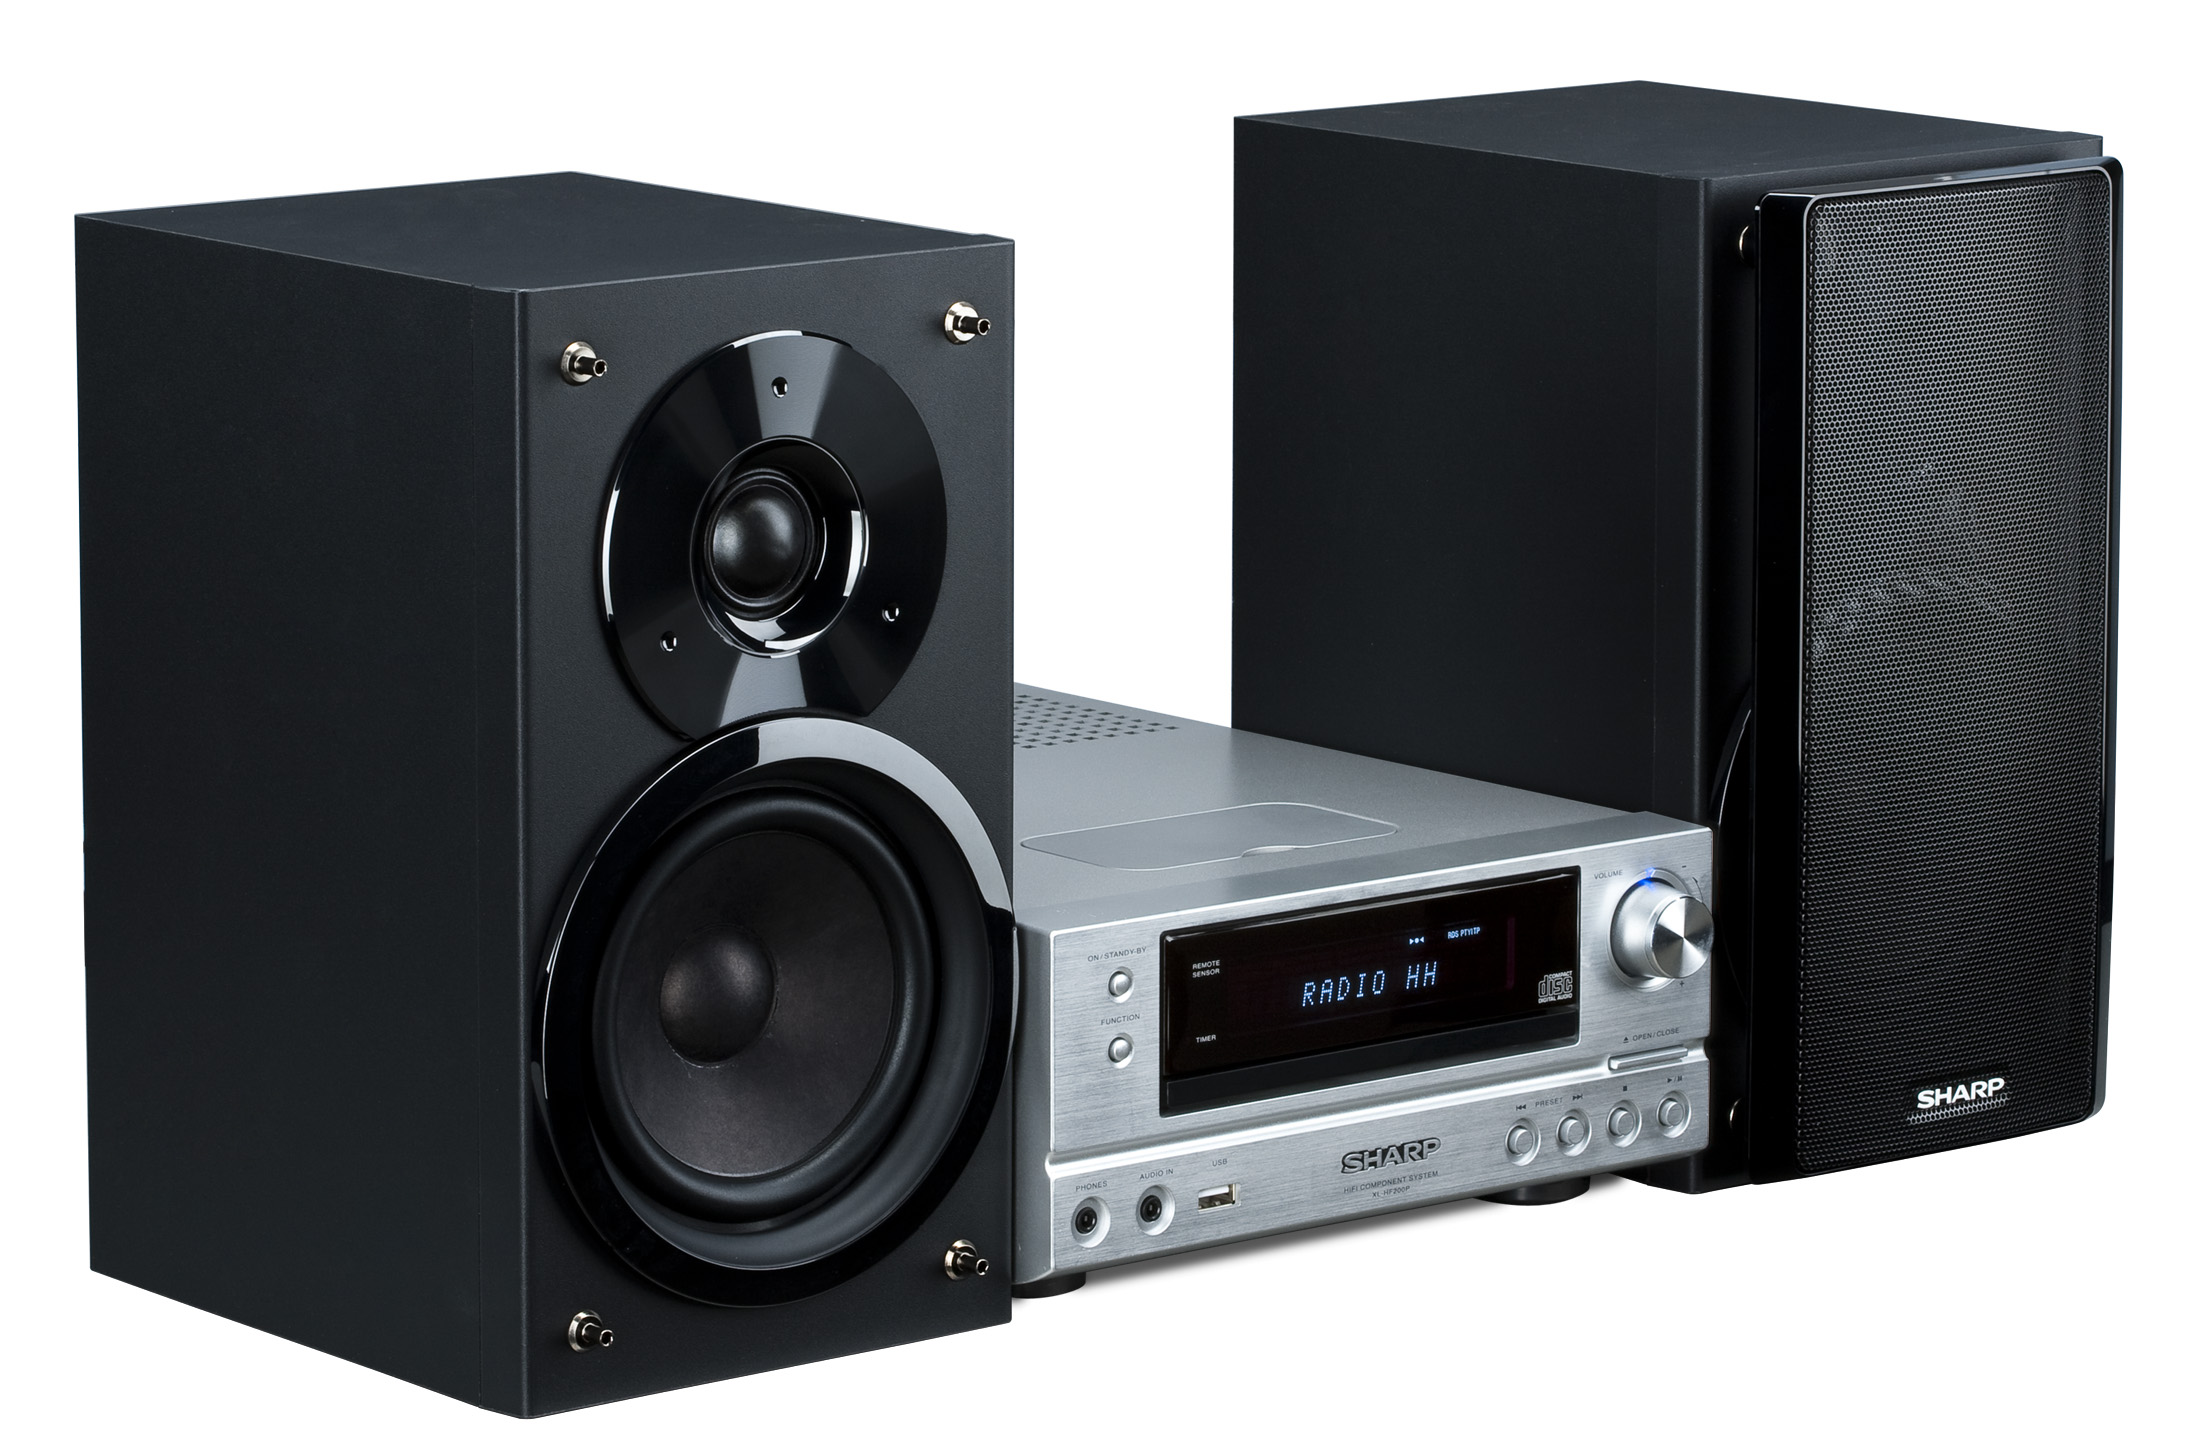 sound system. sound system (speakers and receiver)